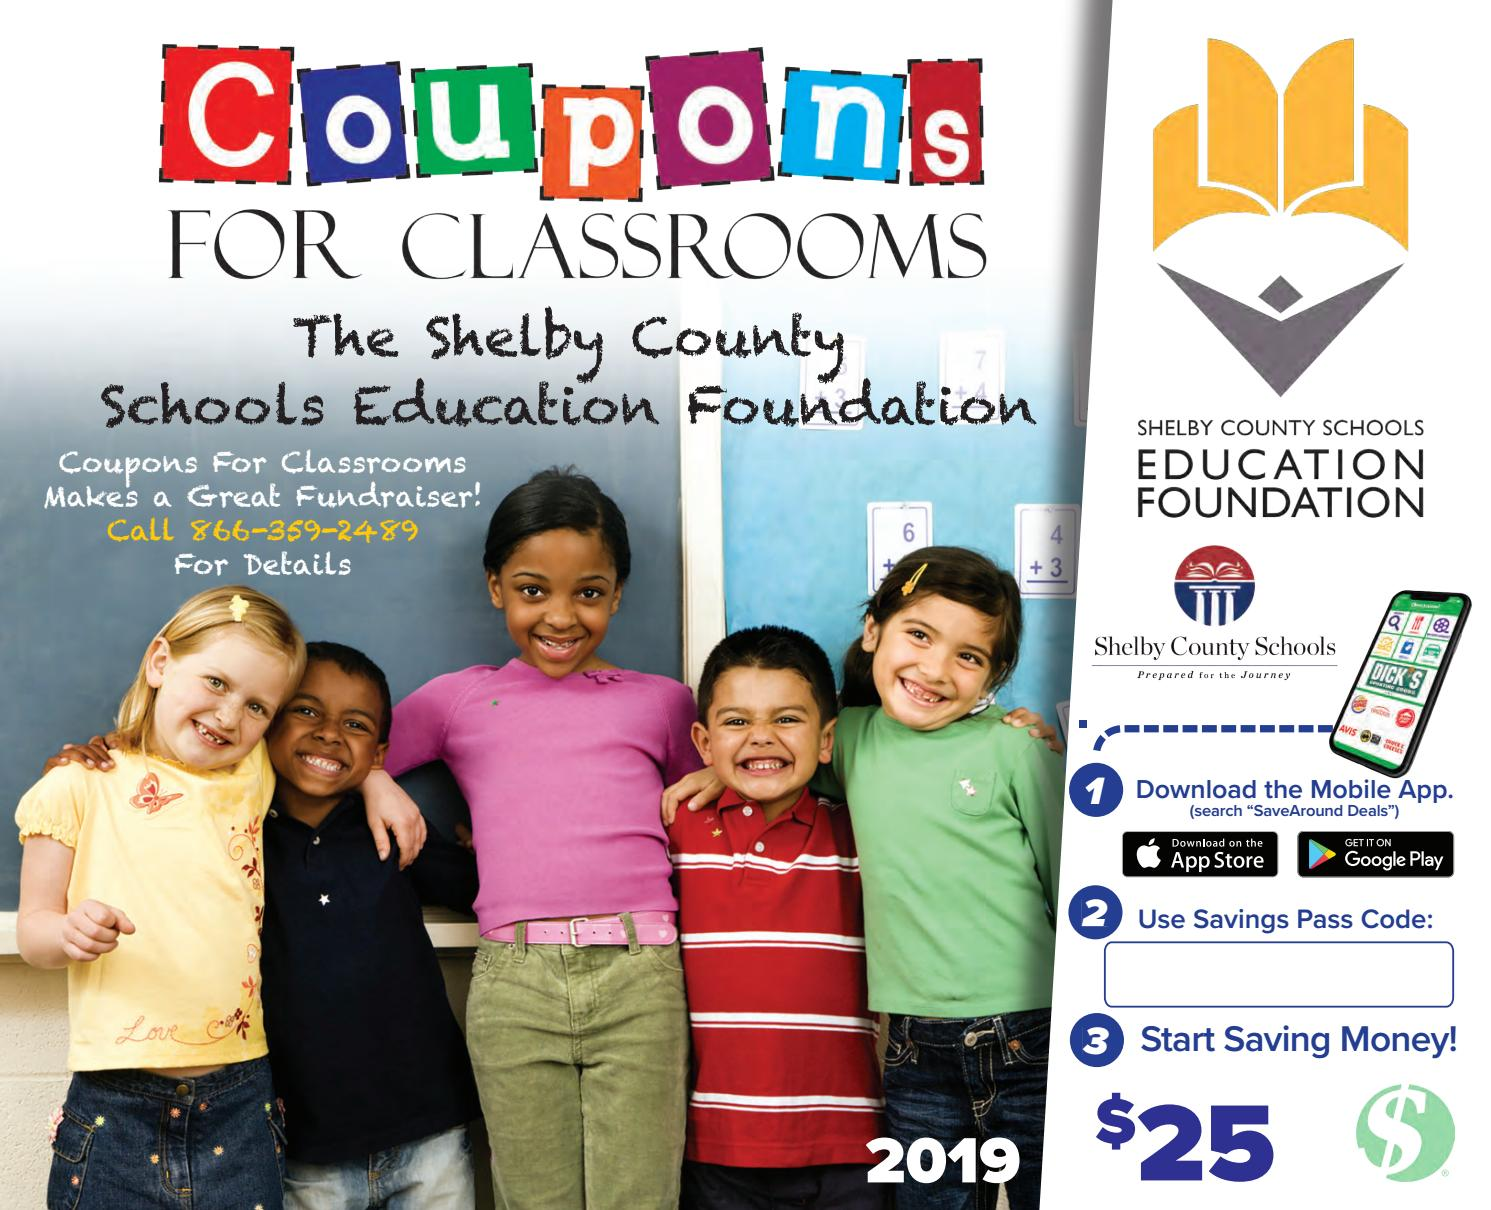 Shelby County Schools Education Foundation by SaveAround - issuu